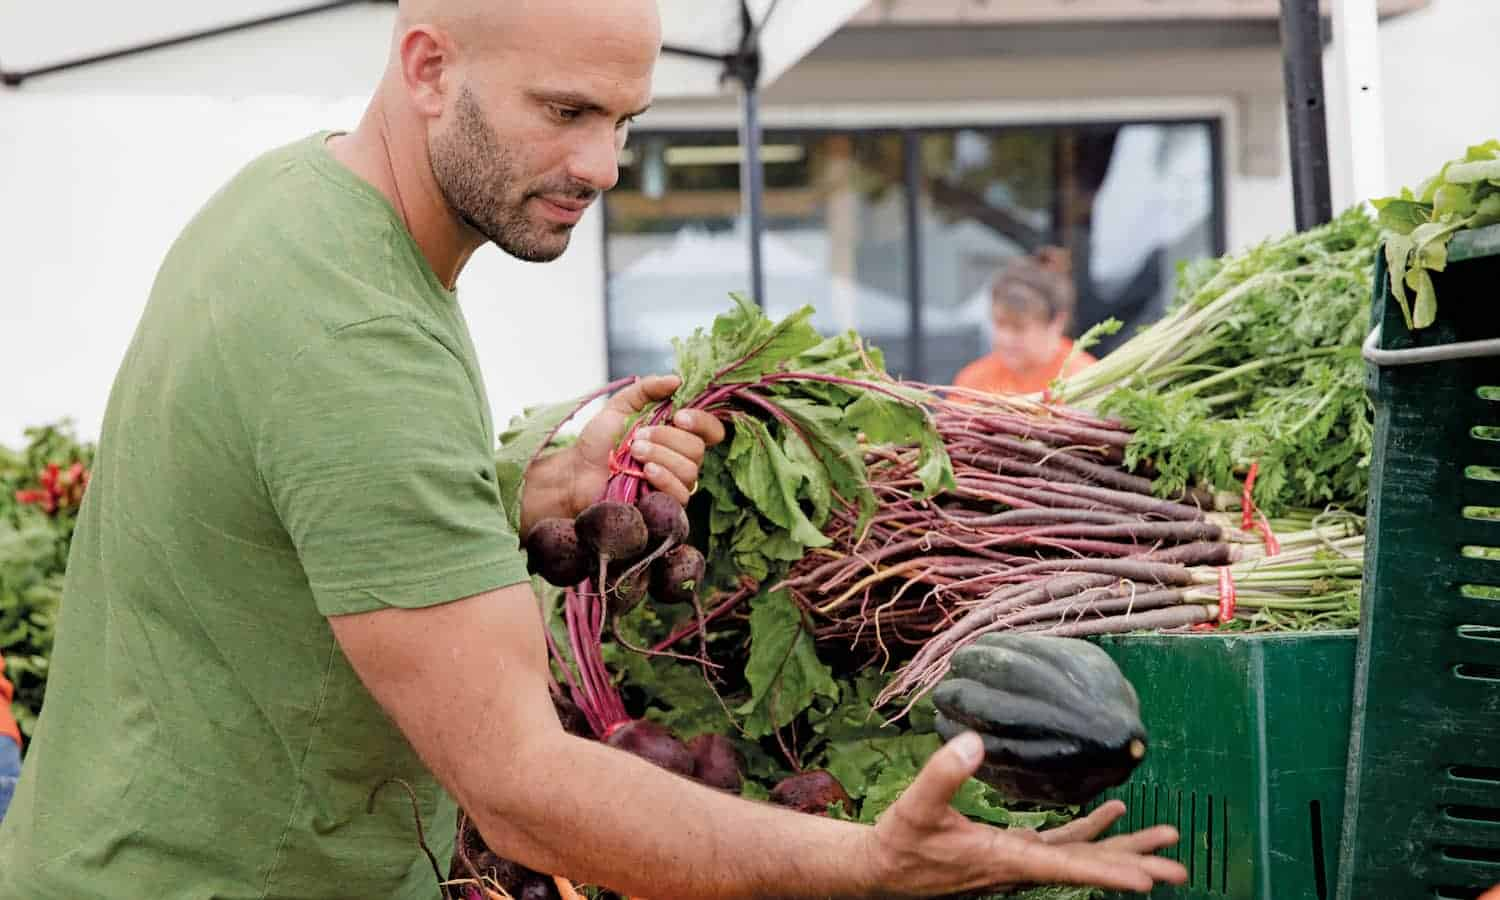 Sam Kass believes there is no single, right way for the world to eat: rather, if everyone eats a little better, we can achieve environmental goals.